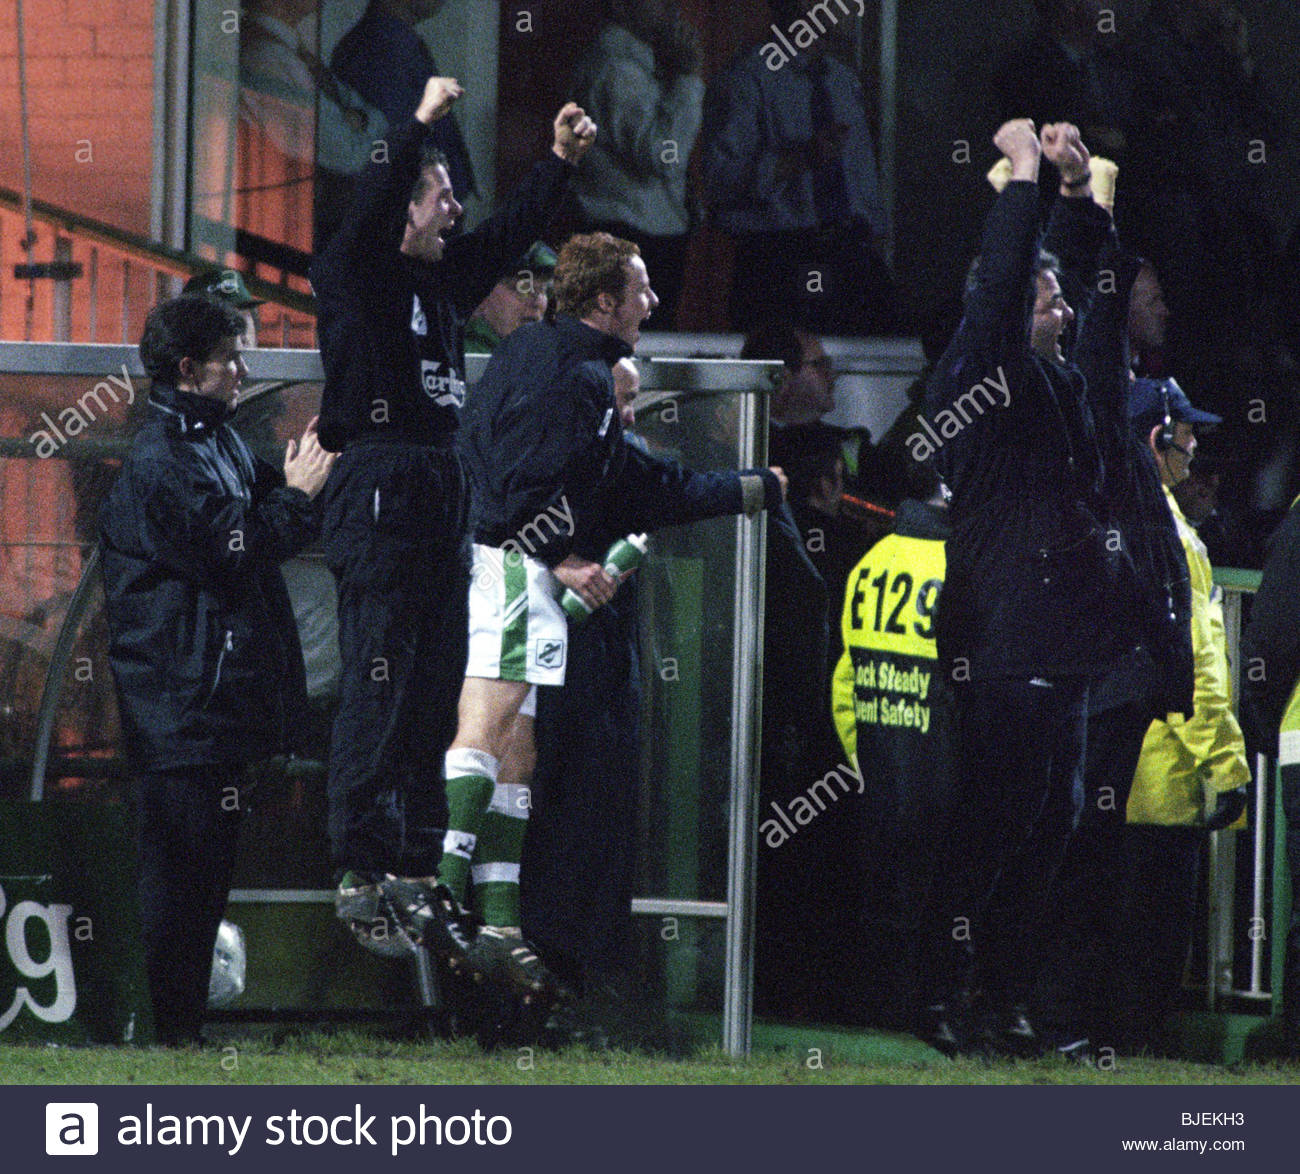 17/02/97 TENNENT'S SCOTTISH CUP 4TH RND HIBS V CELTIC (1-1) EASTER ROAD - EDINBURGH The Hibs substitutes and - Stock Image